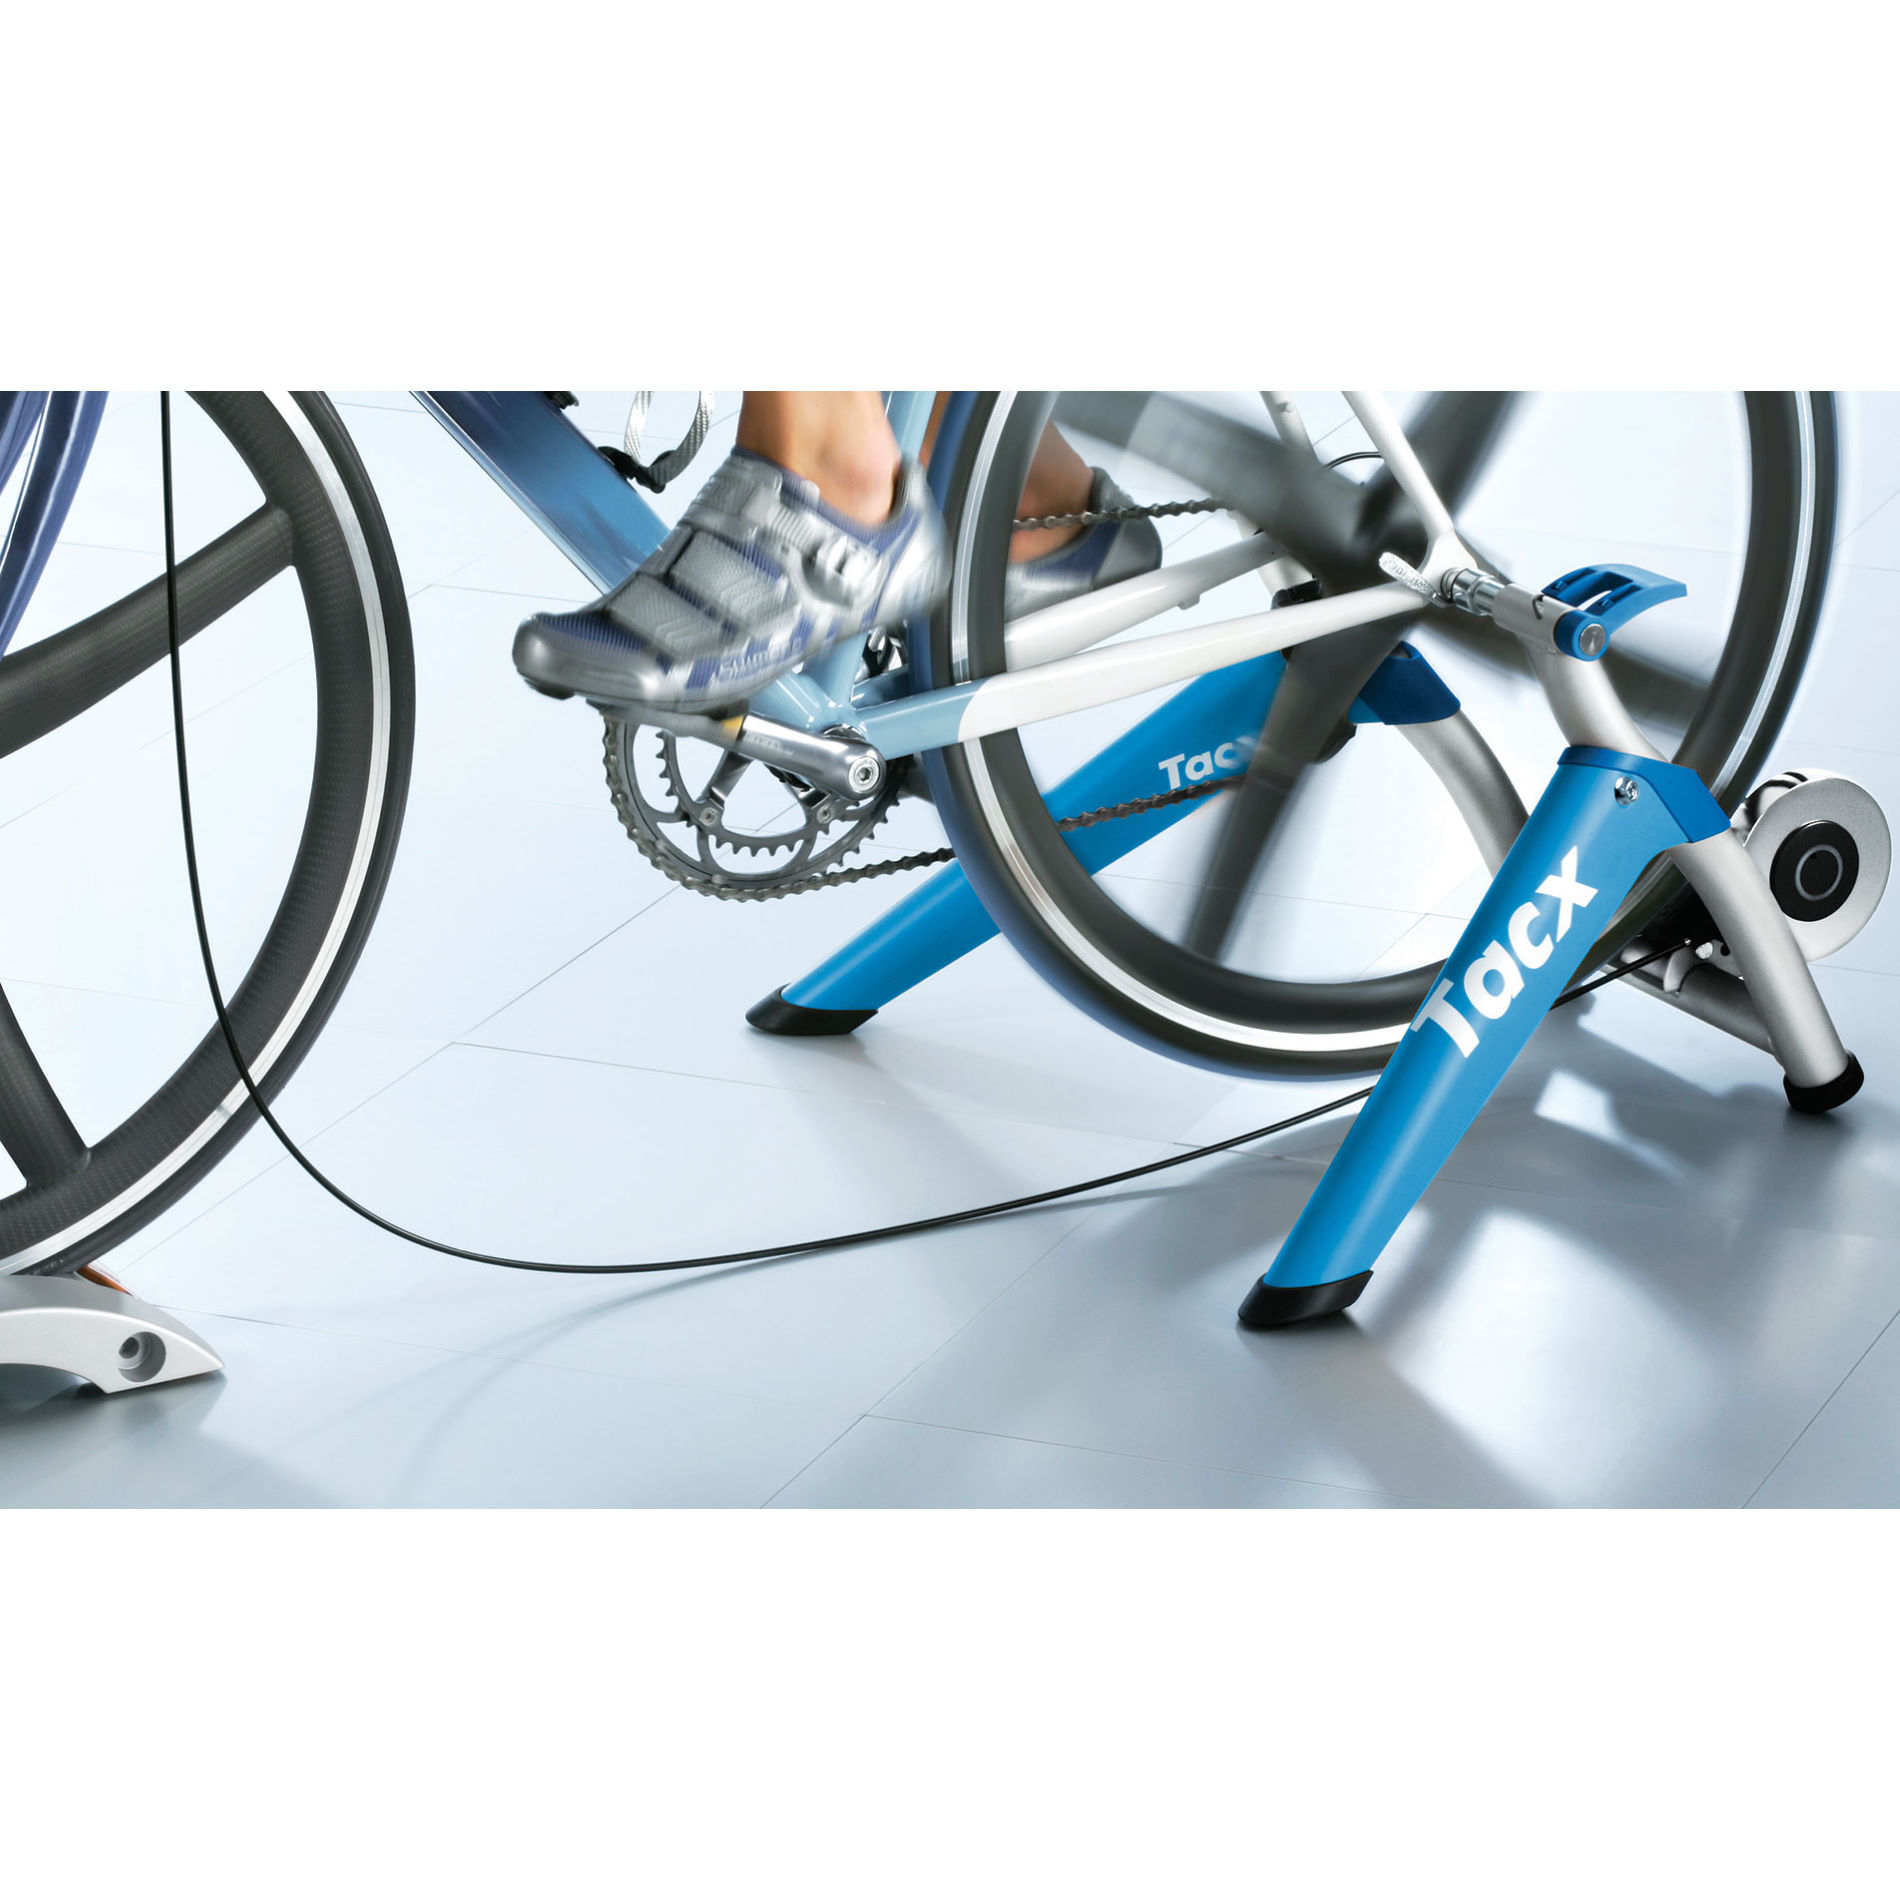 Tacx Satori High Power Cycle Trainer